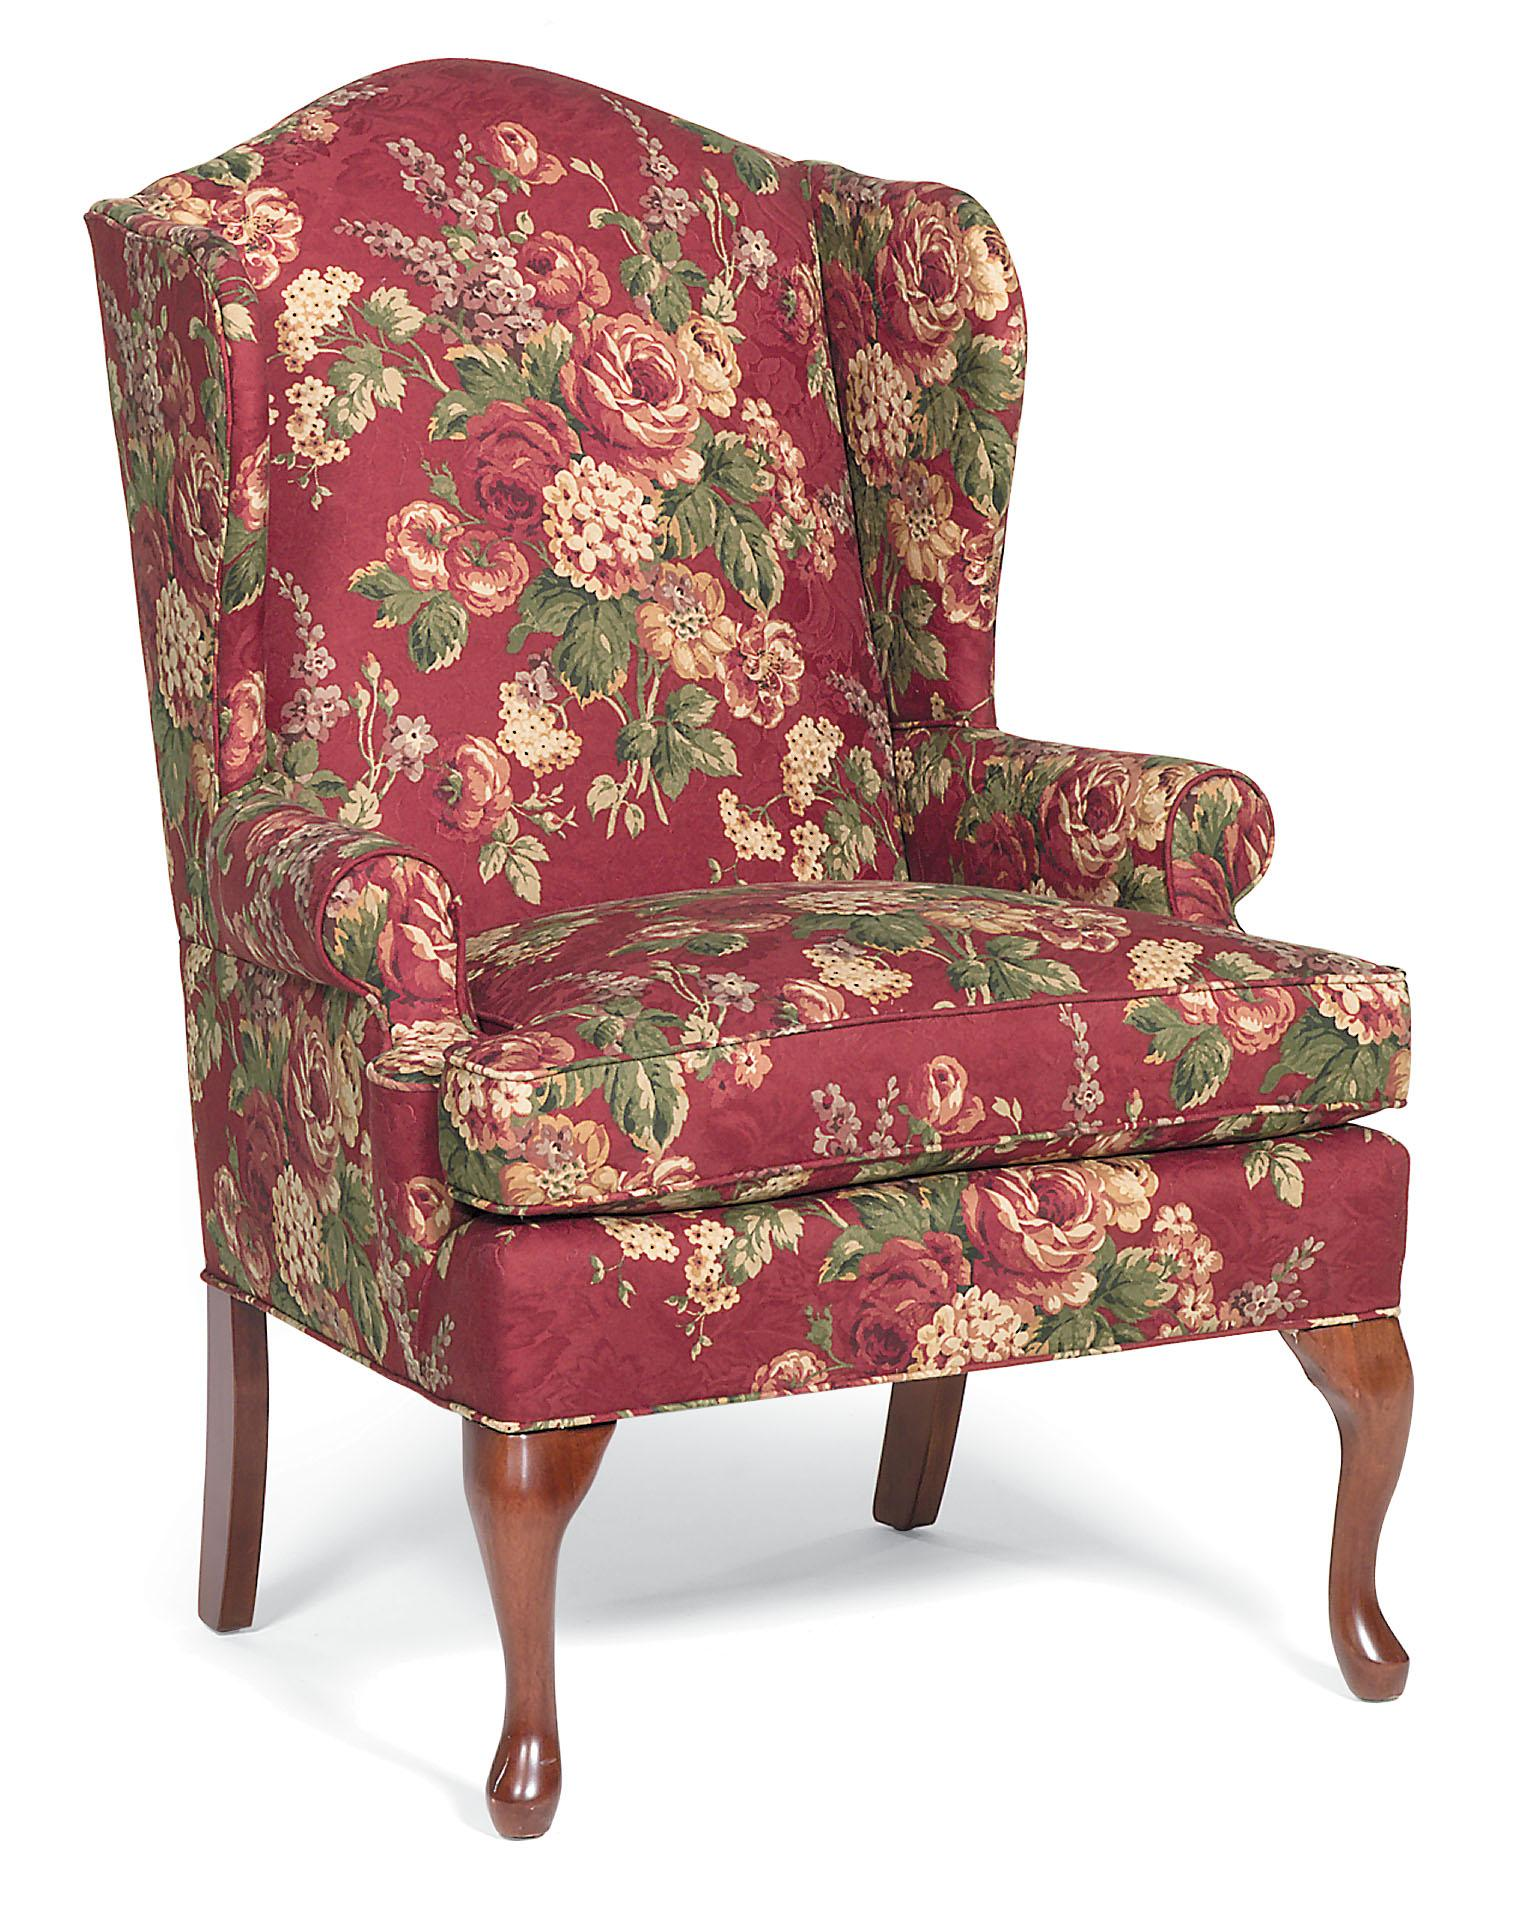 Fairfield Chairs Upholstered Wing Chair - Item Number: 5125-01